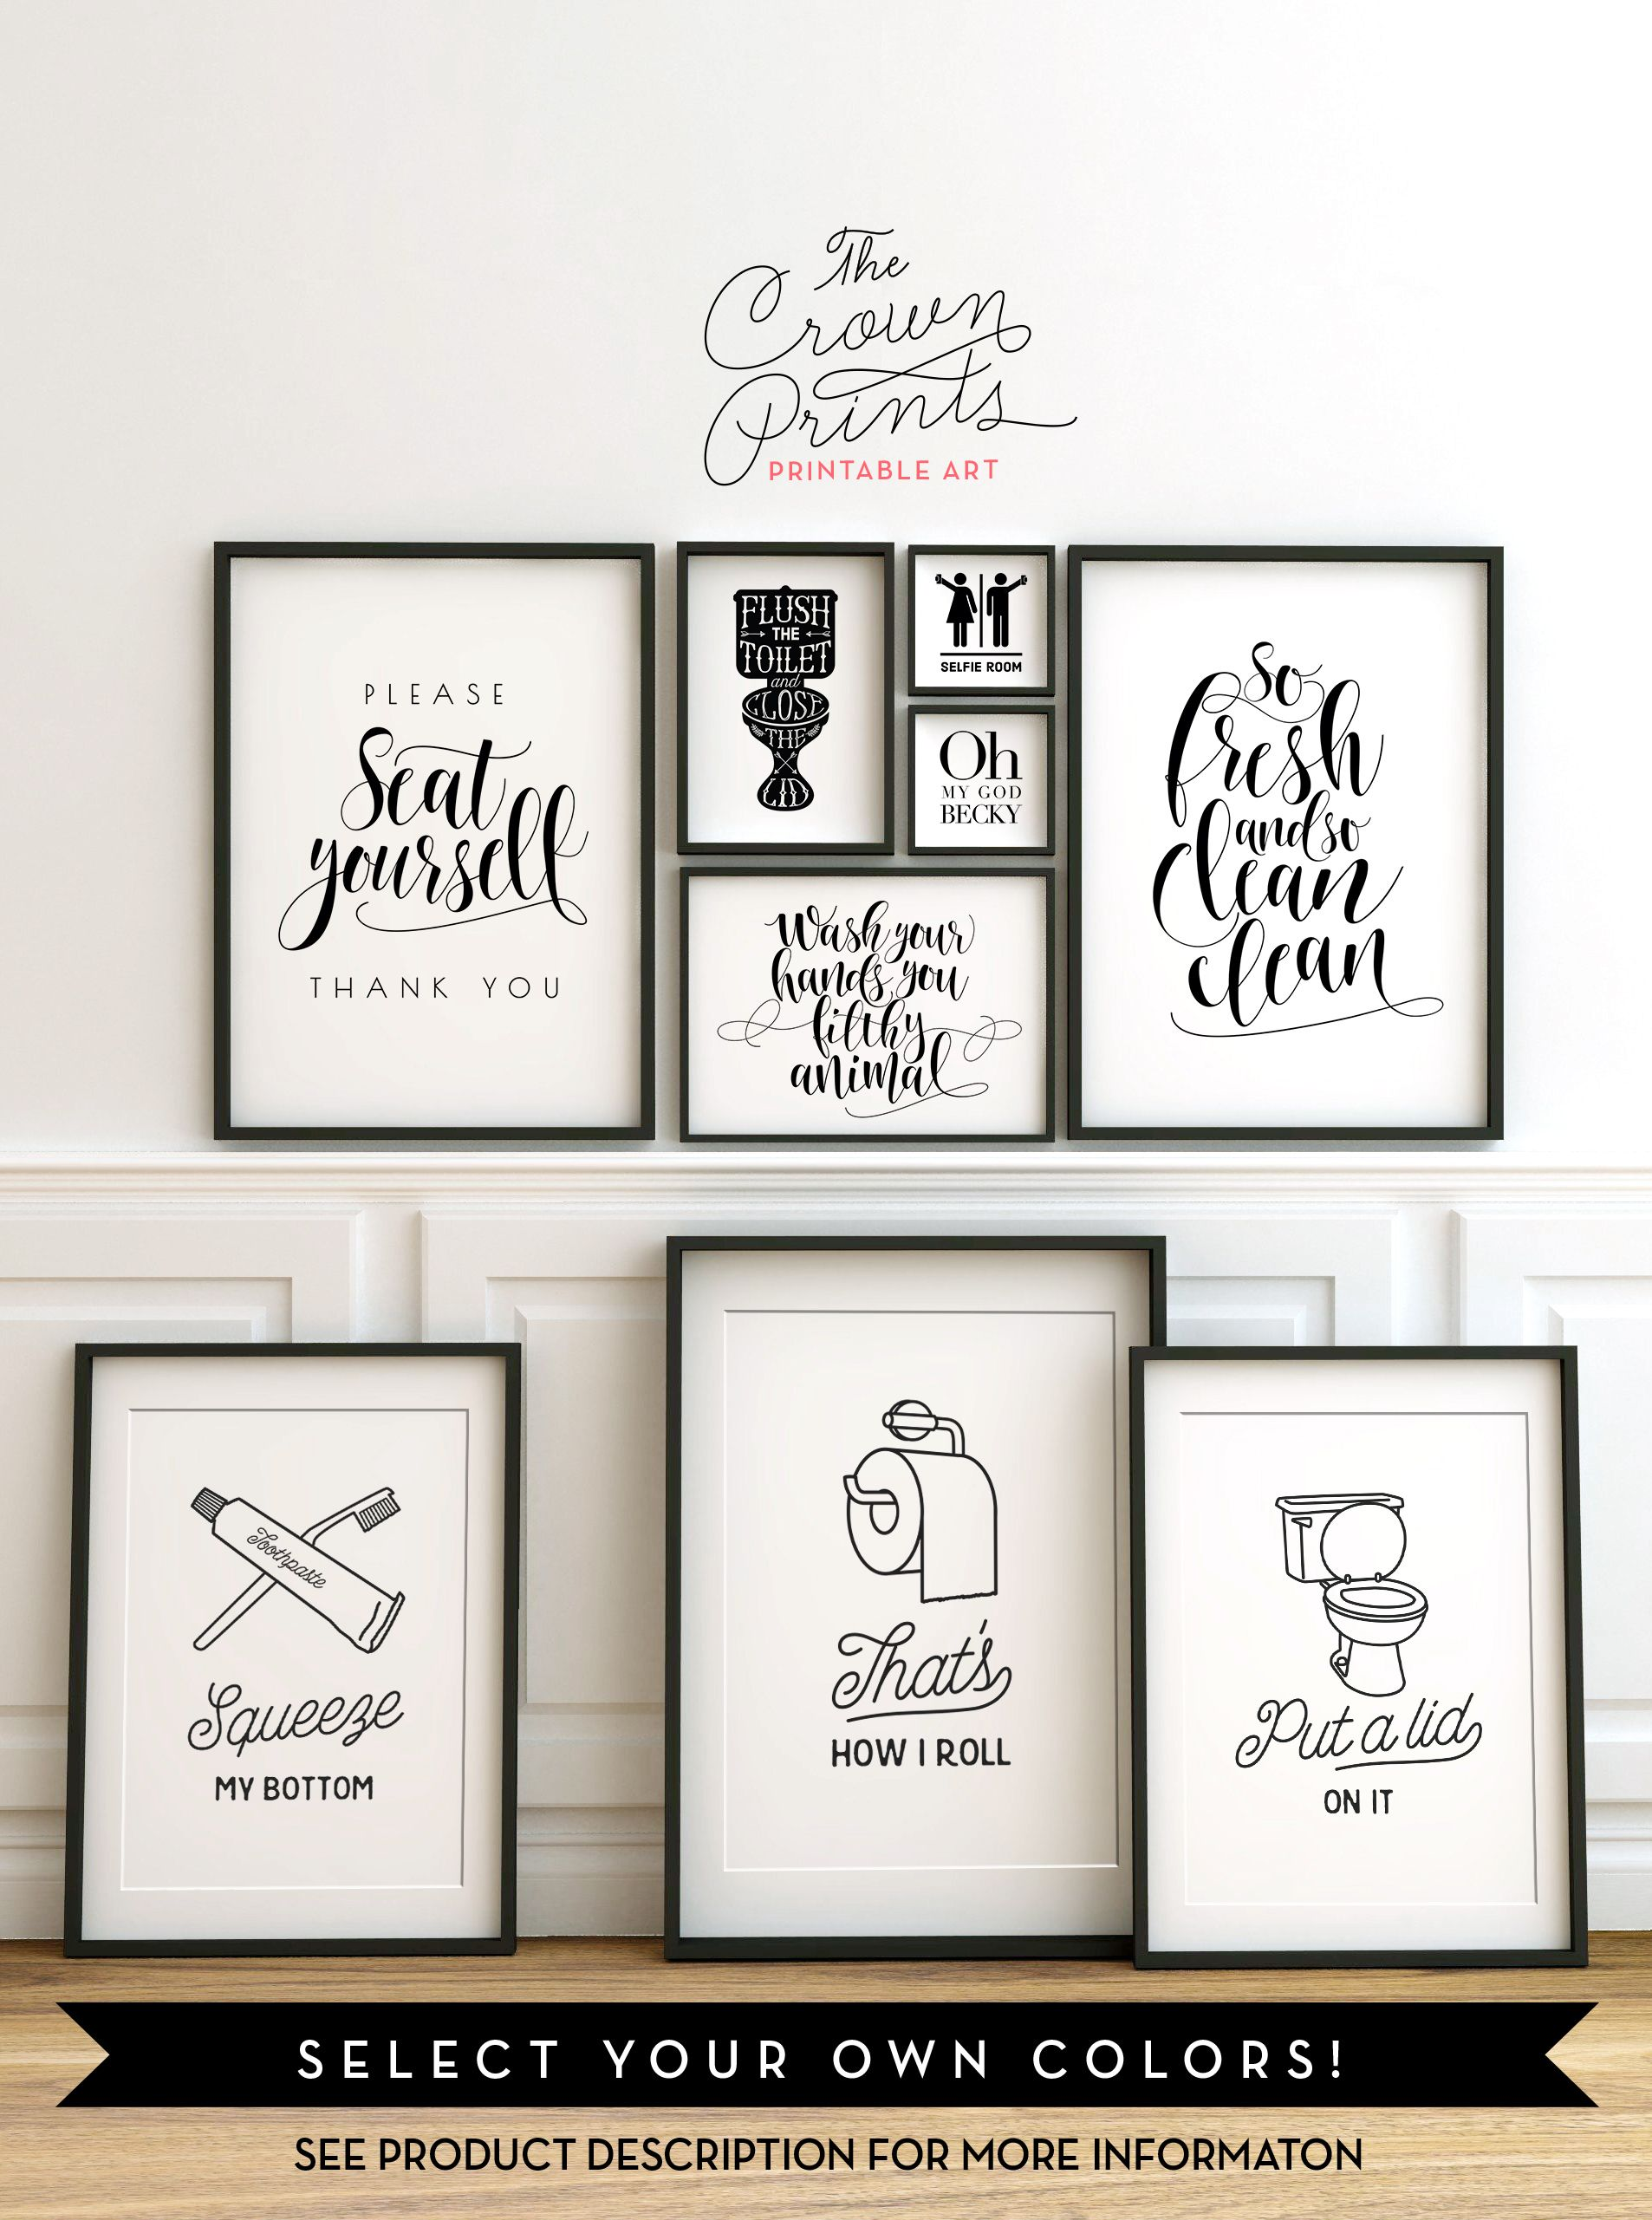 Printable bathroom wall art from the crown prints on etsy Cool wall signs